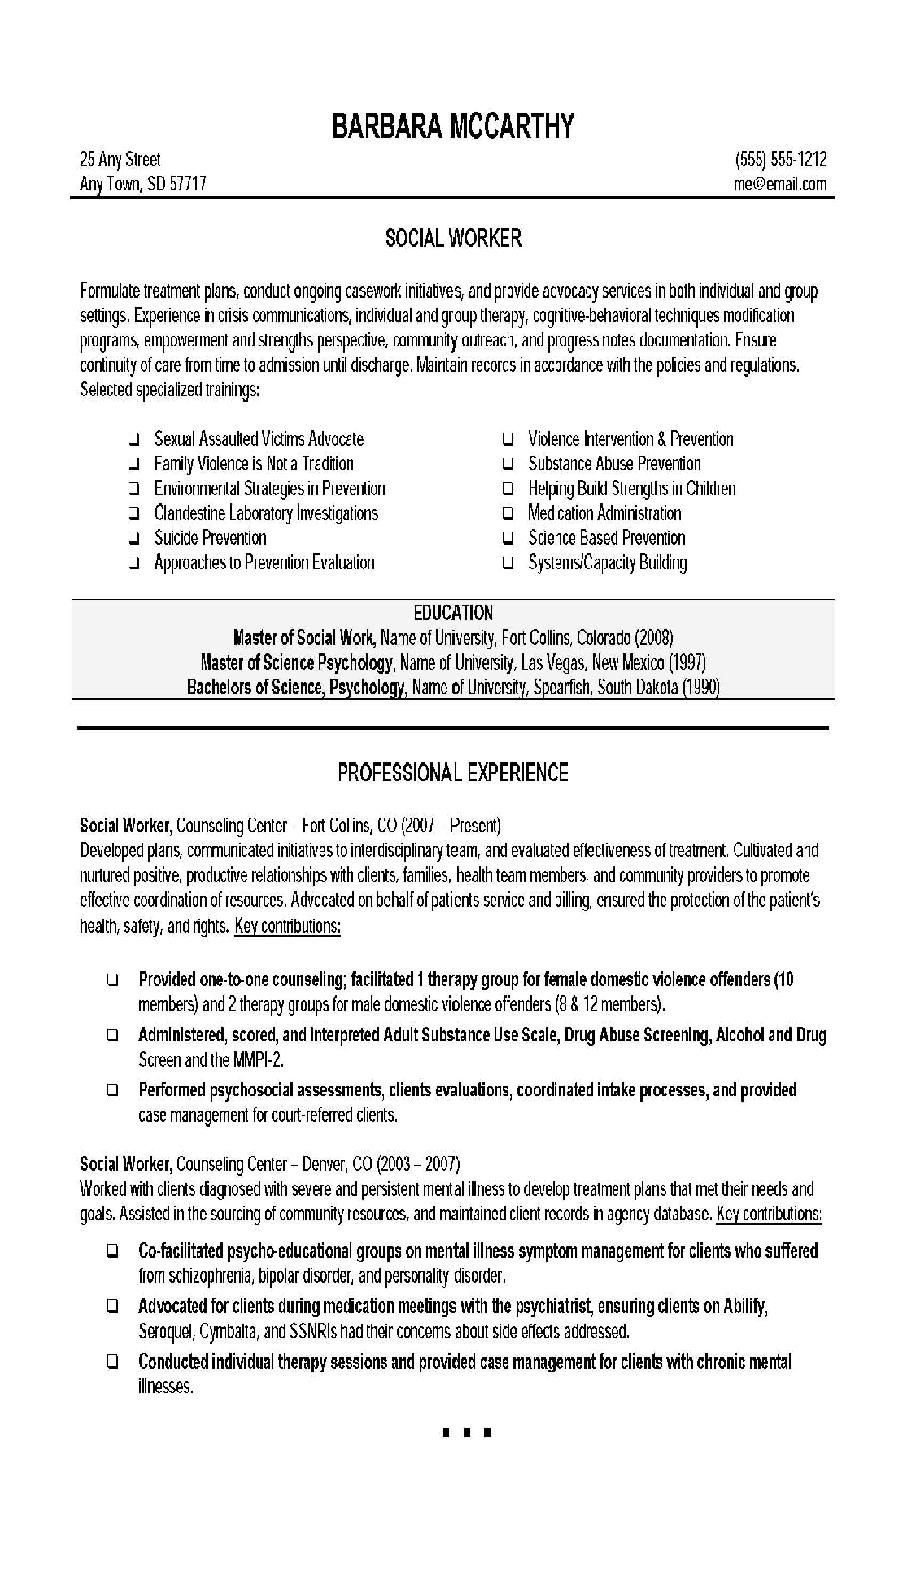 Social Worker Resume 4 Social Work Pinterest Resume Social